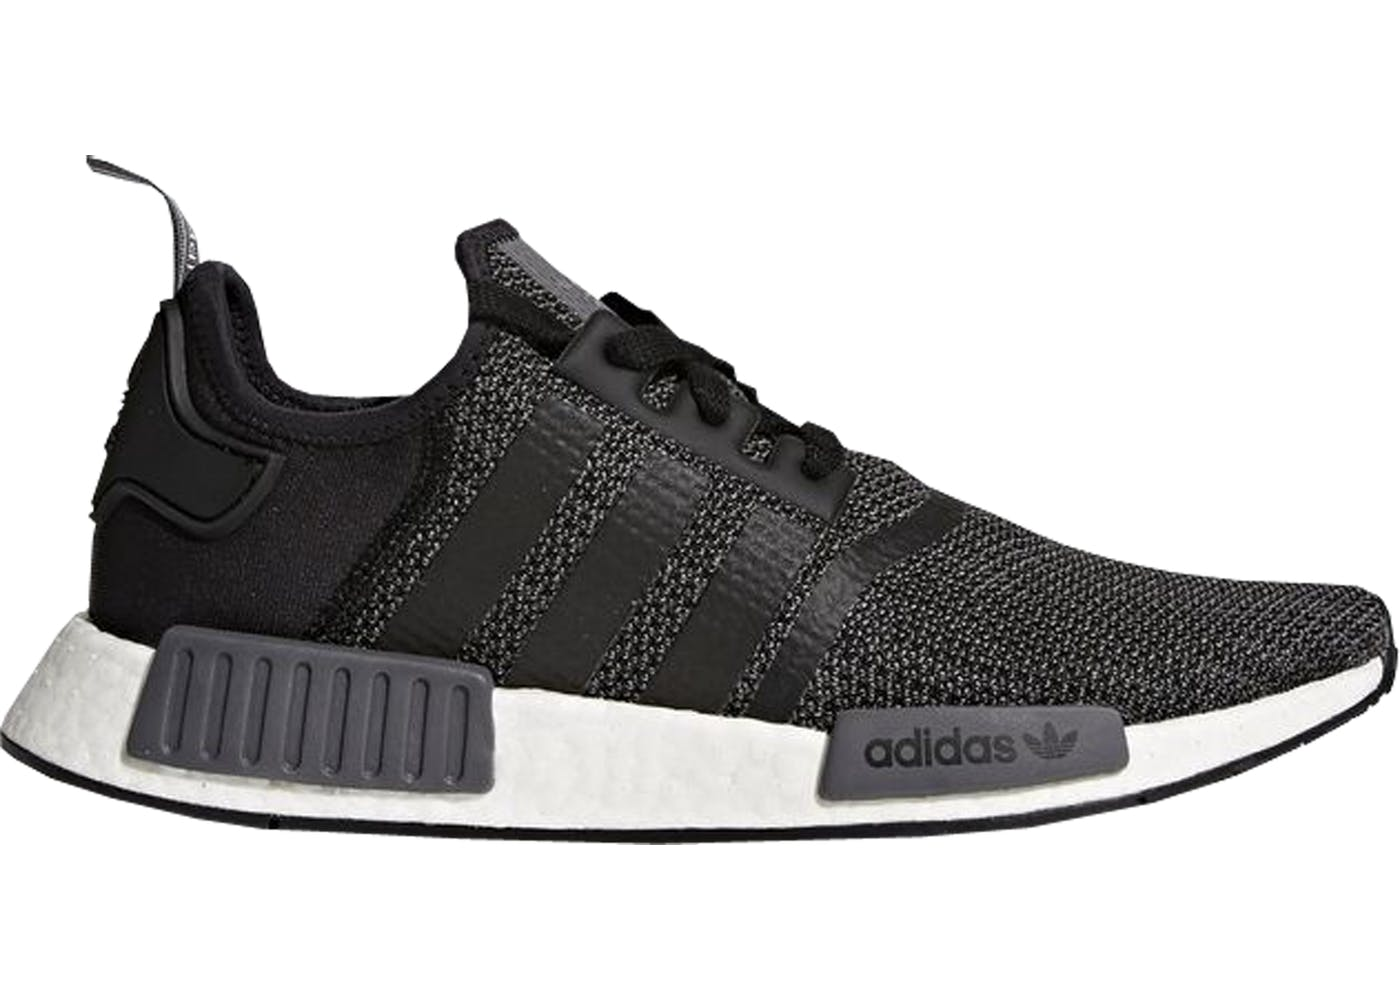 adidas nmd r1 core black carbon. Black Bedroom Furniture Sets. Home Design Ideas